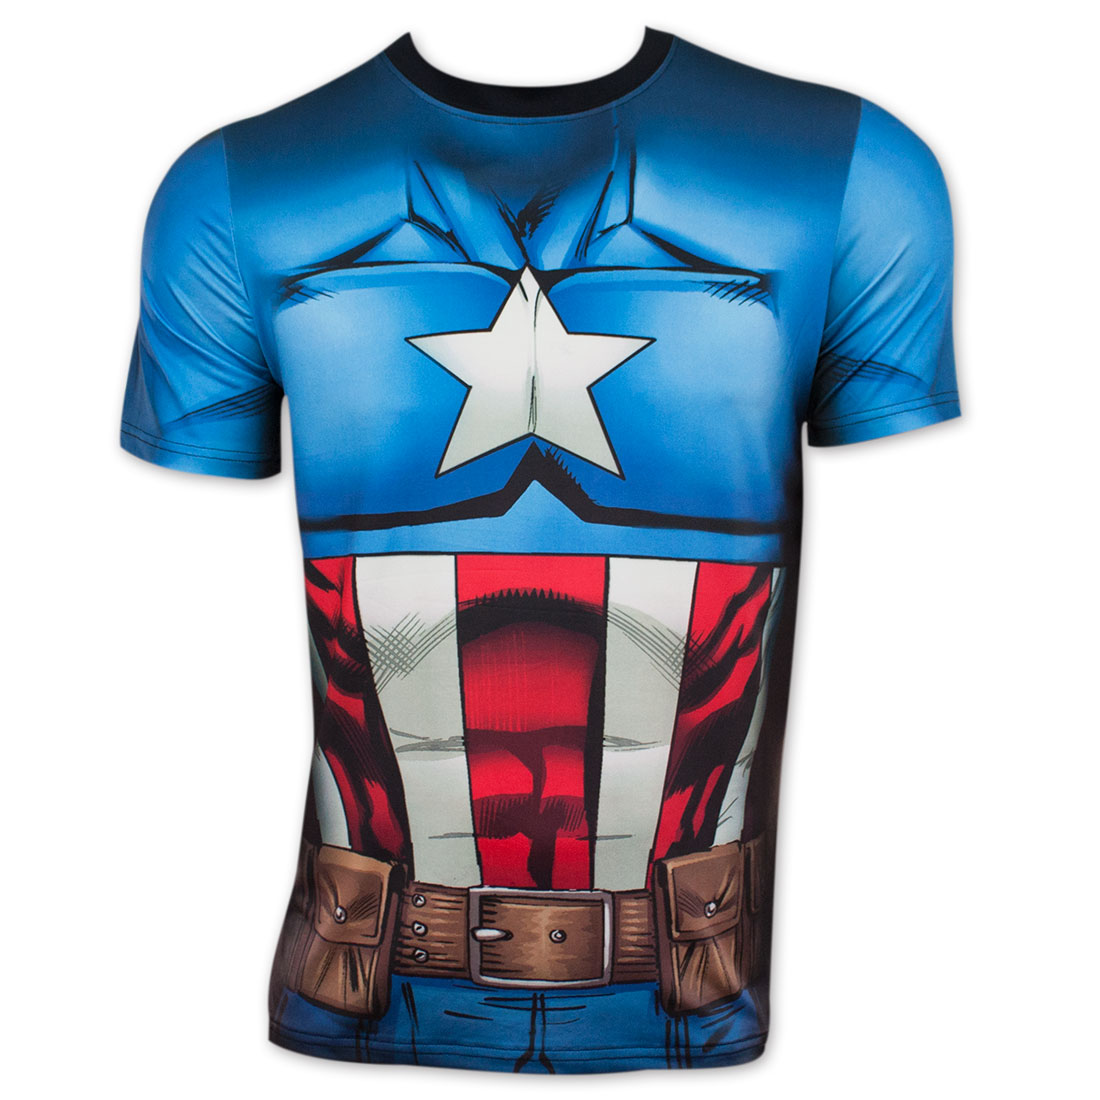 Men's Sublimated Costume Tee Shirt